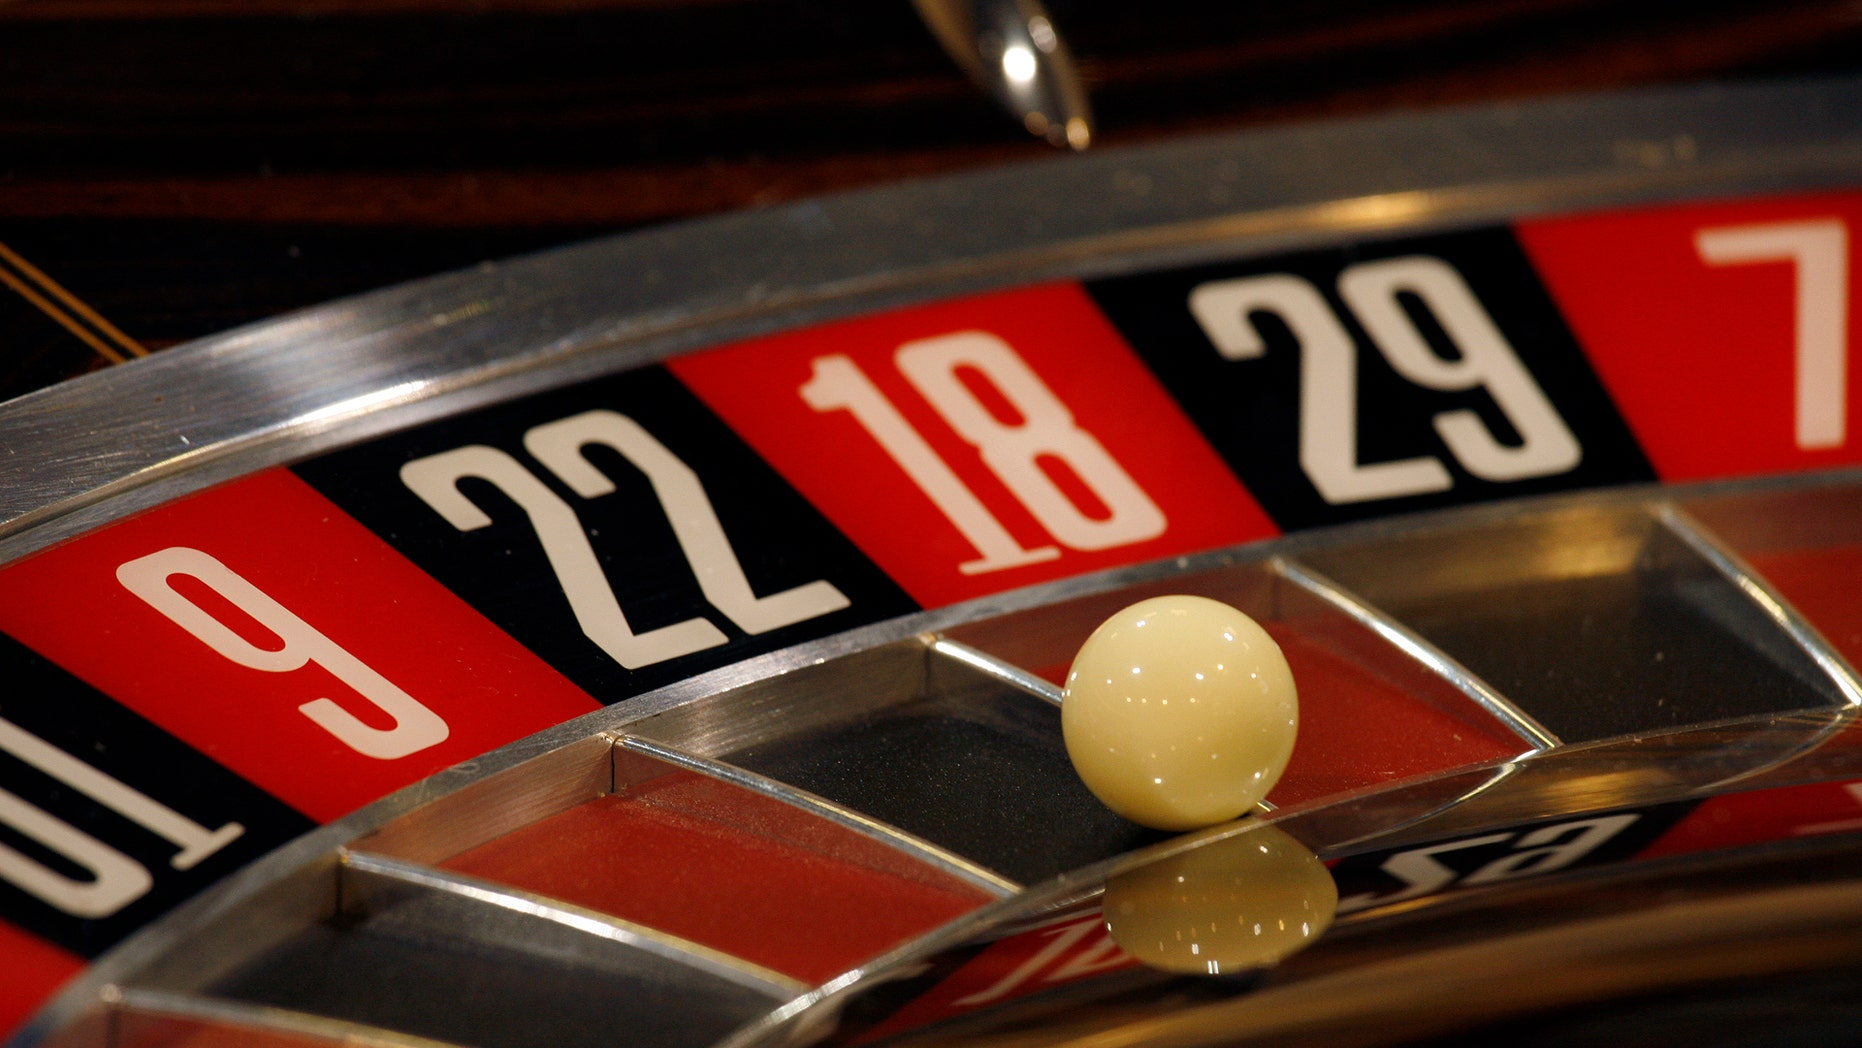 Liberty Vittert: How to win three times more money at the casino